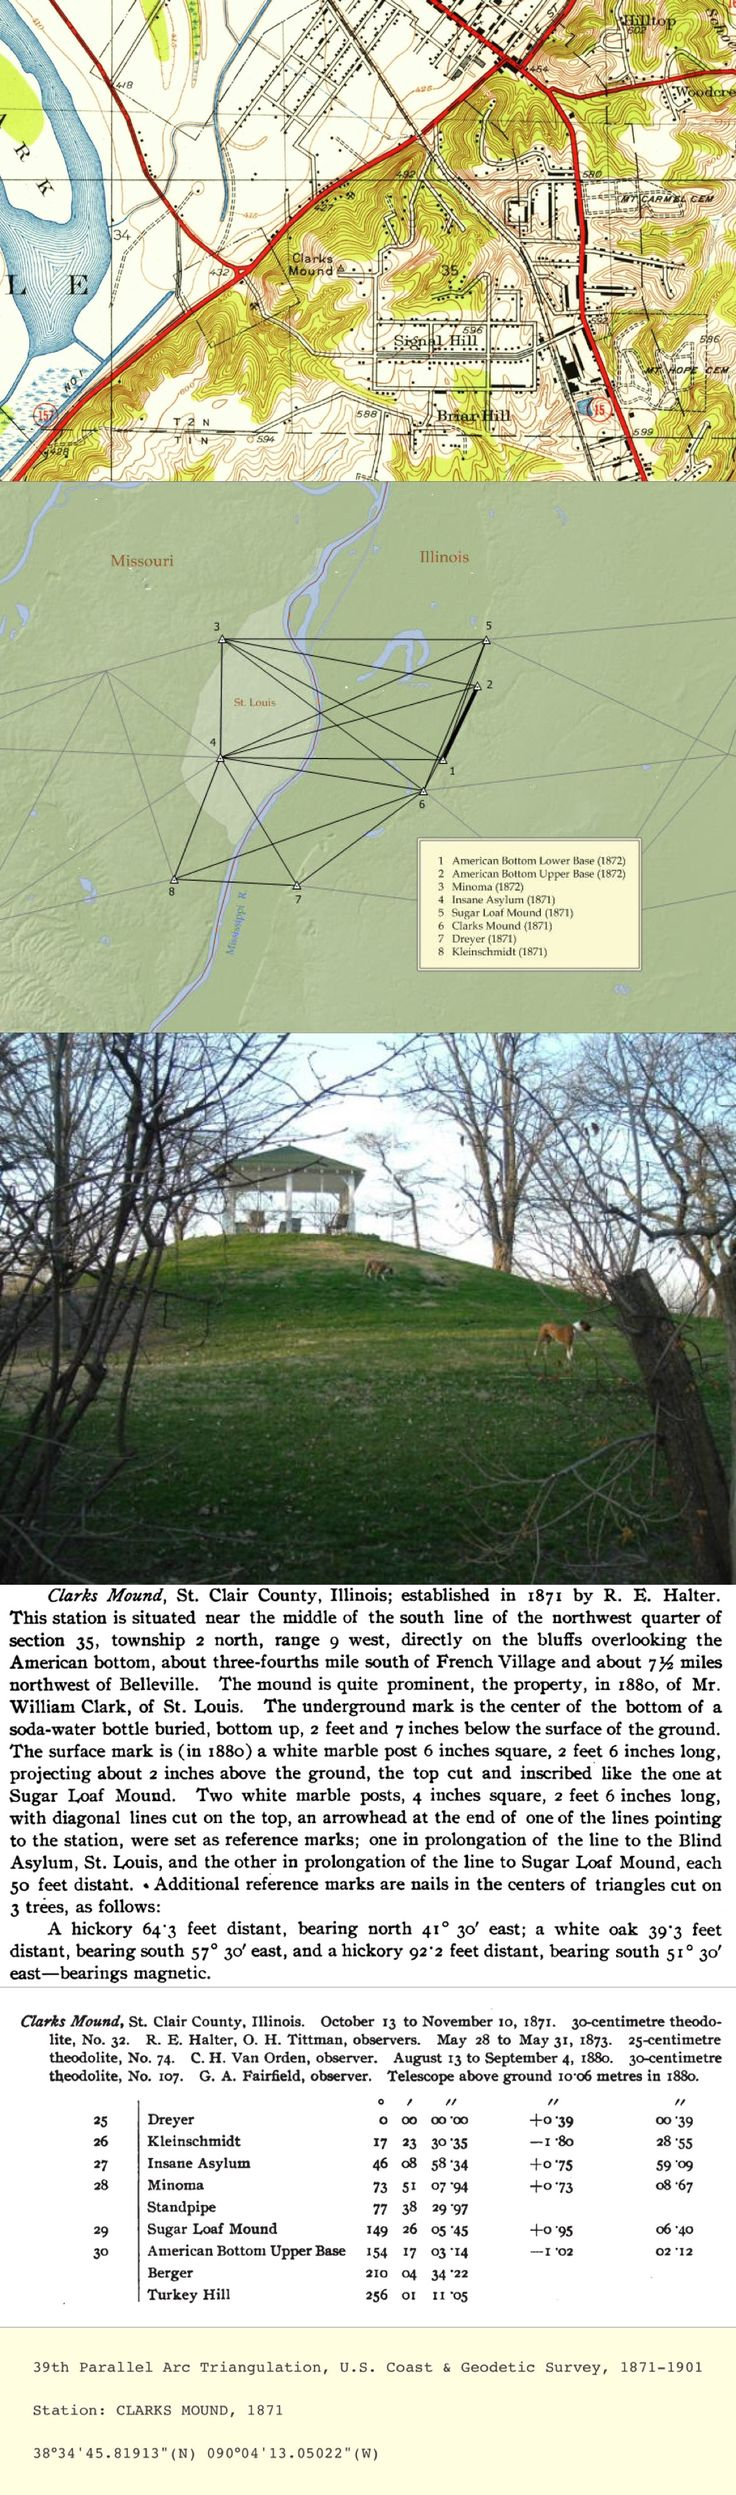 39th Parallel Arc Triangulation, U.S. Coast & Geodetic Survey / Station: CLARKS MOUND, 1871